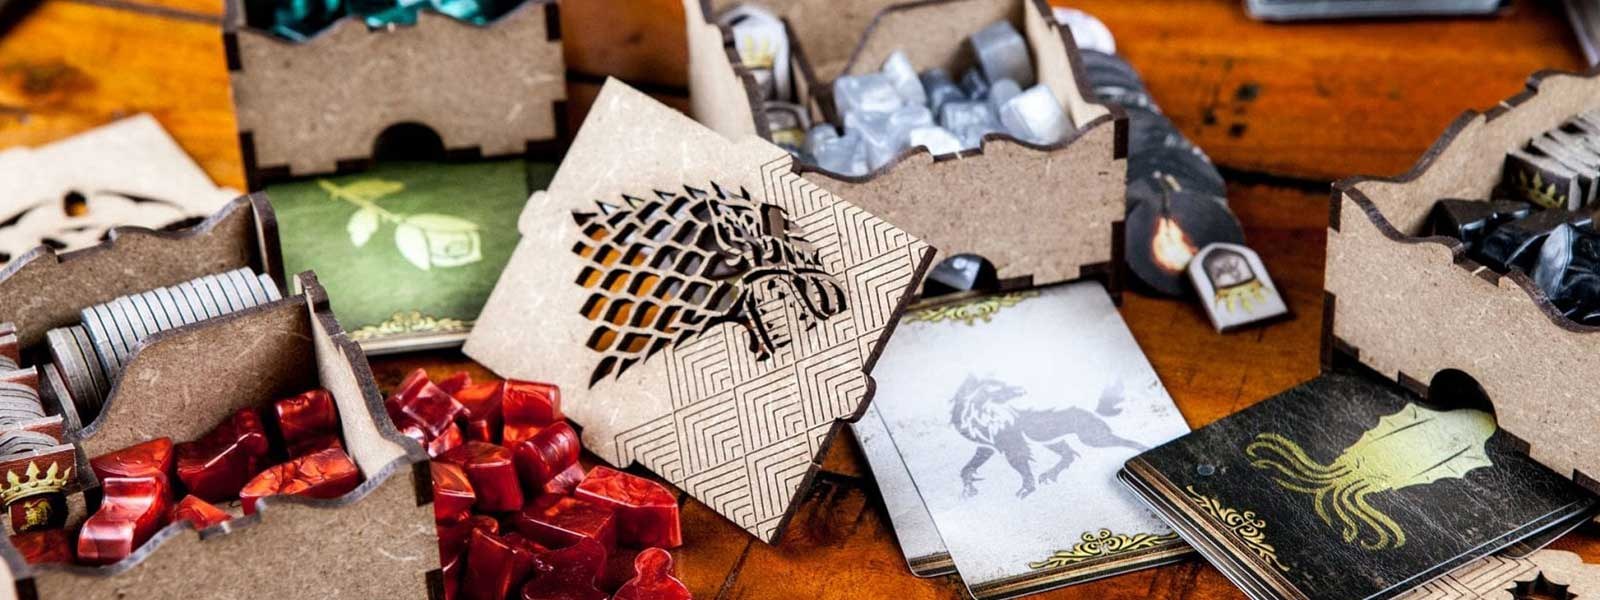 Organizer Insert A game of Thrones The Dicetroyers